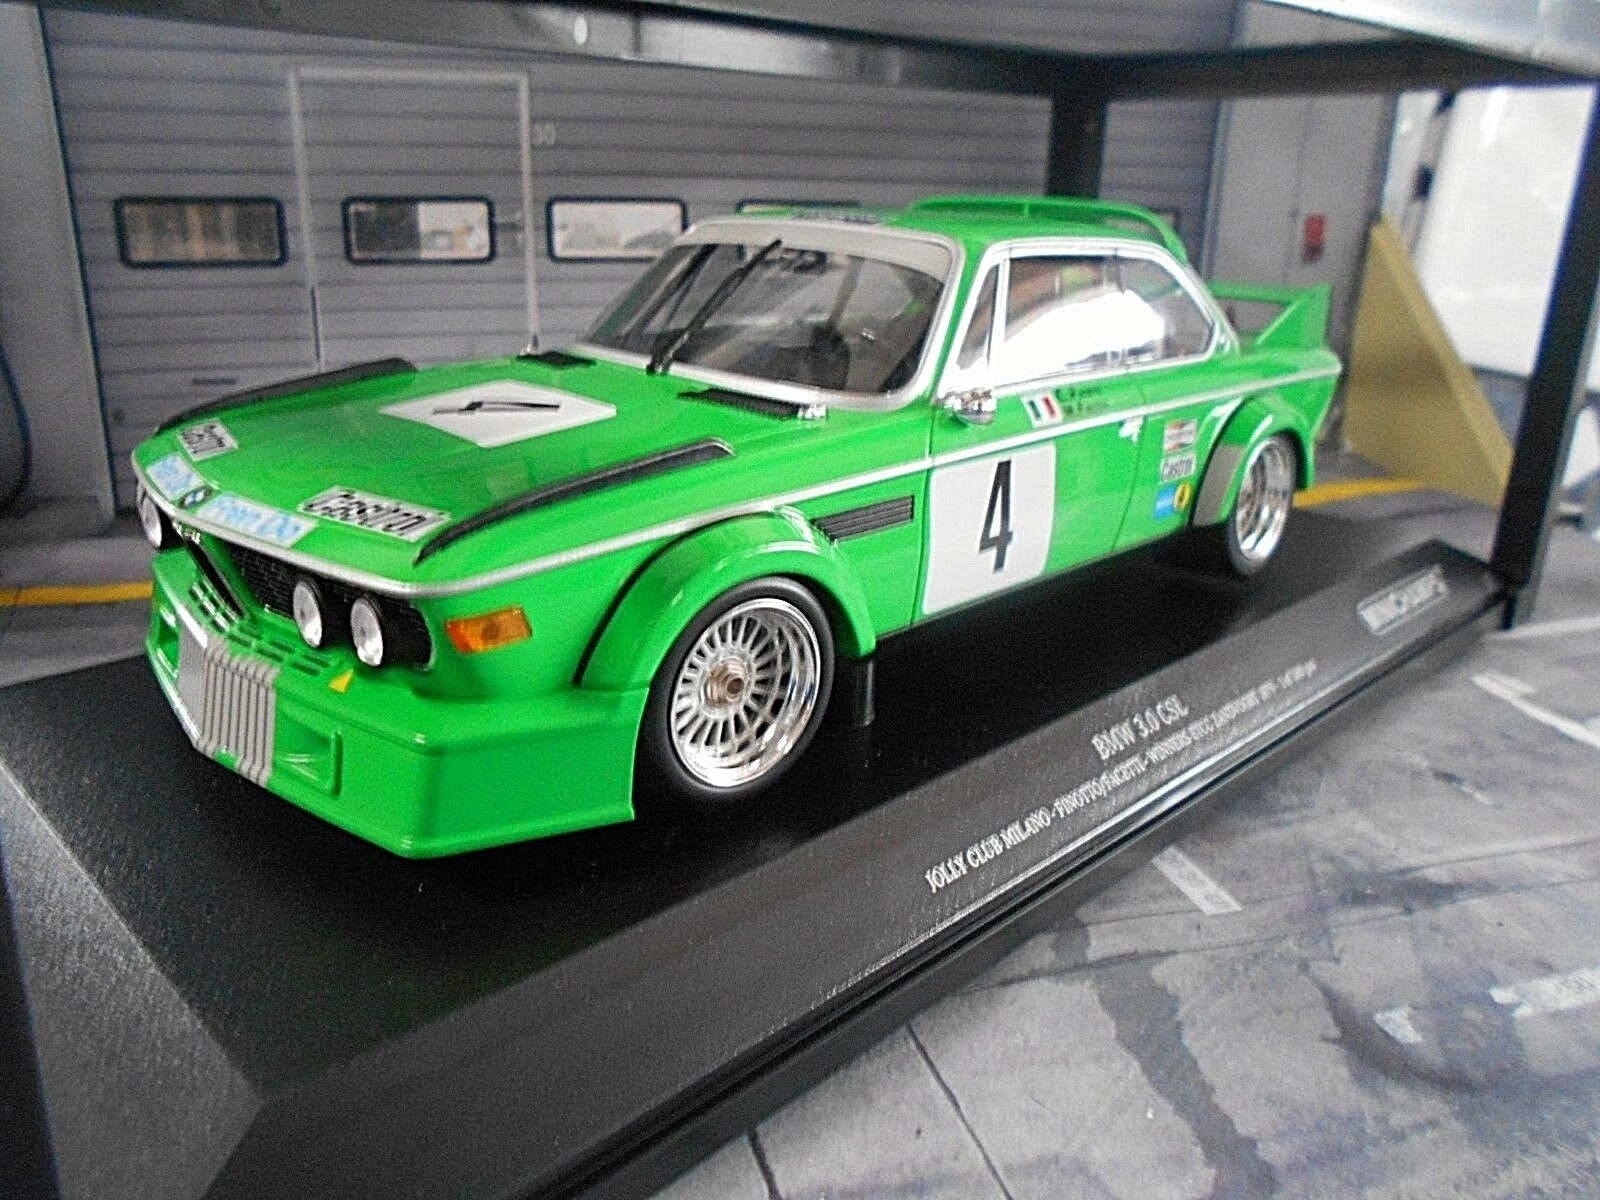 Bmw 3.0 CSL ETCC Zandvoort 1979 winner  4 finotto facetti Jolly Minichamps 1 18